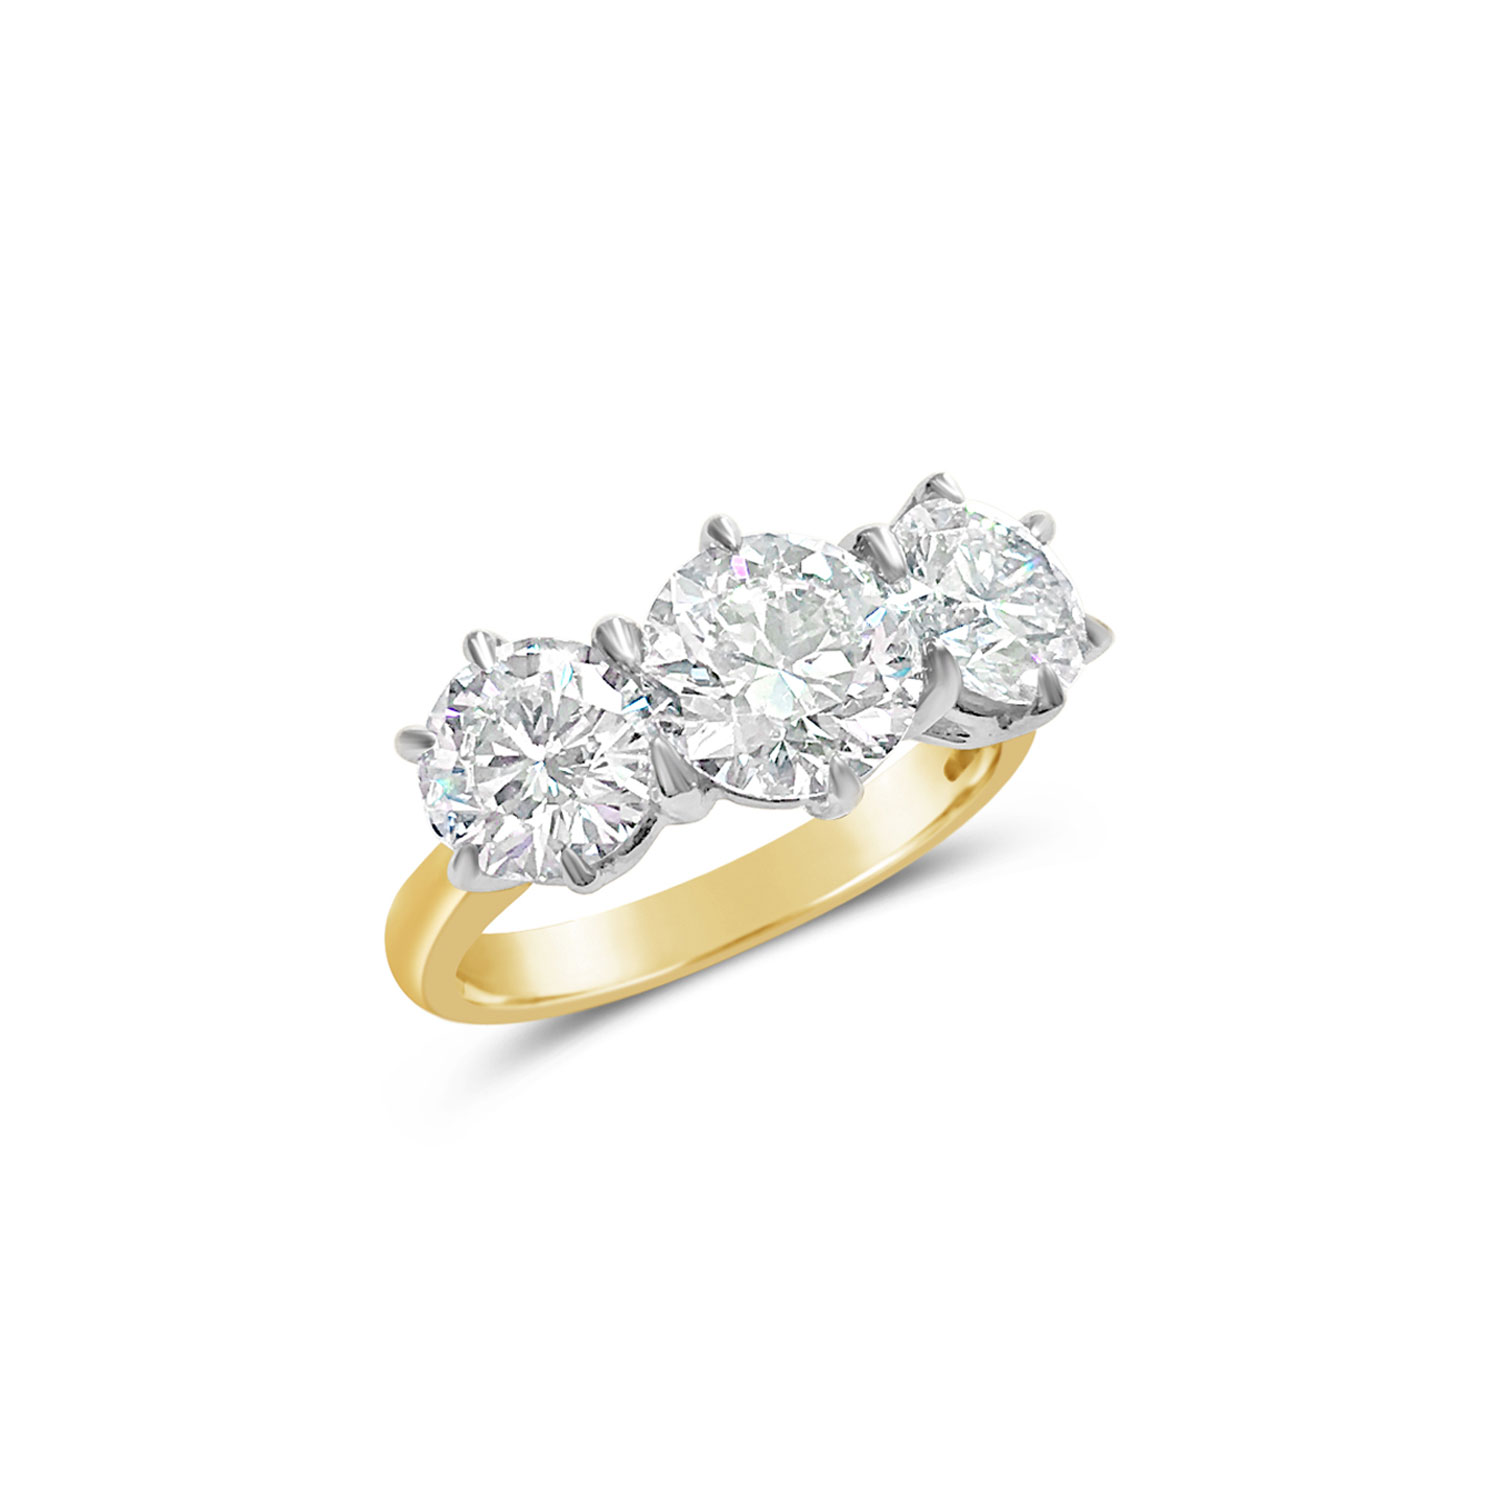 Brilliant-cut diamond three-stone claw-set ring in 18ct white and yellow gold